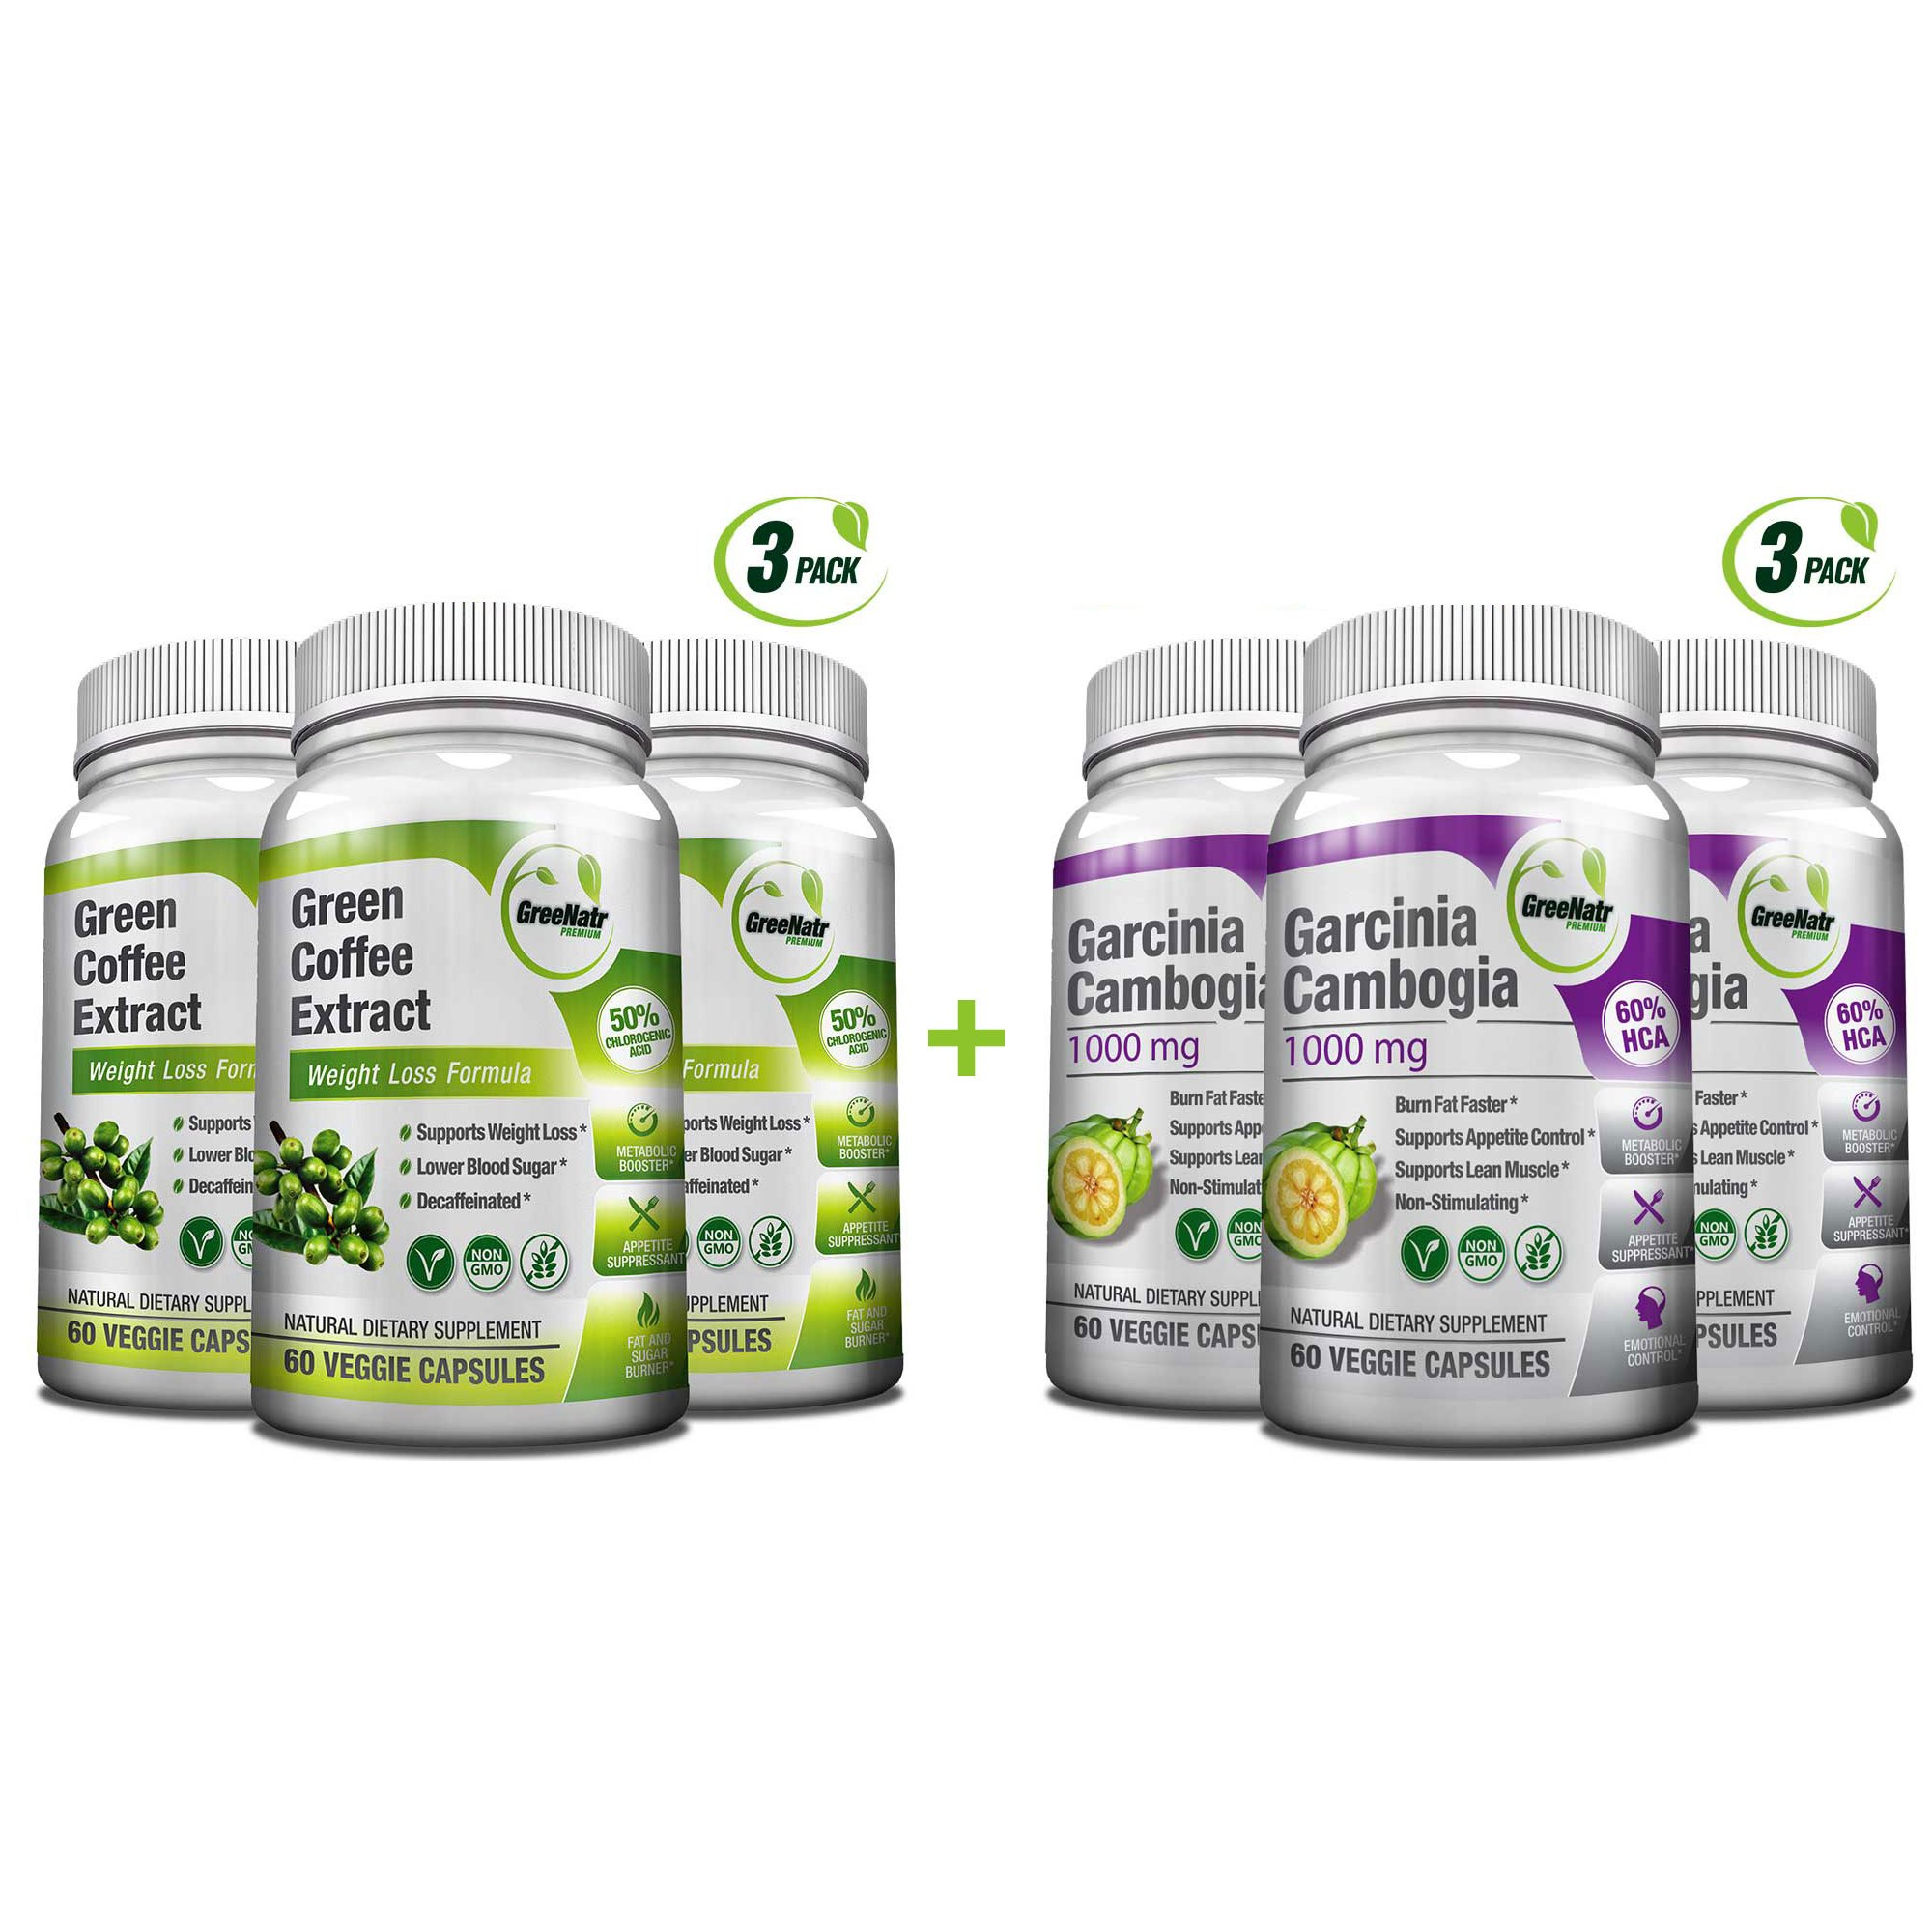 All-in-One Weight Diet Loss Pills & Appetite Suppressant Bundle w/Pure Green Coffee Bean Extract + Garcinia Cambogia Extract   Blocks Fat, Sugar, Carbs - 120 Veggie Capsules - Gluten Free & Non GMO by GreeNatr